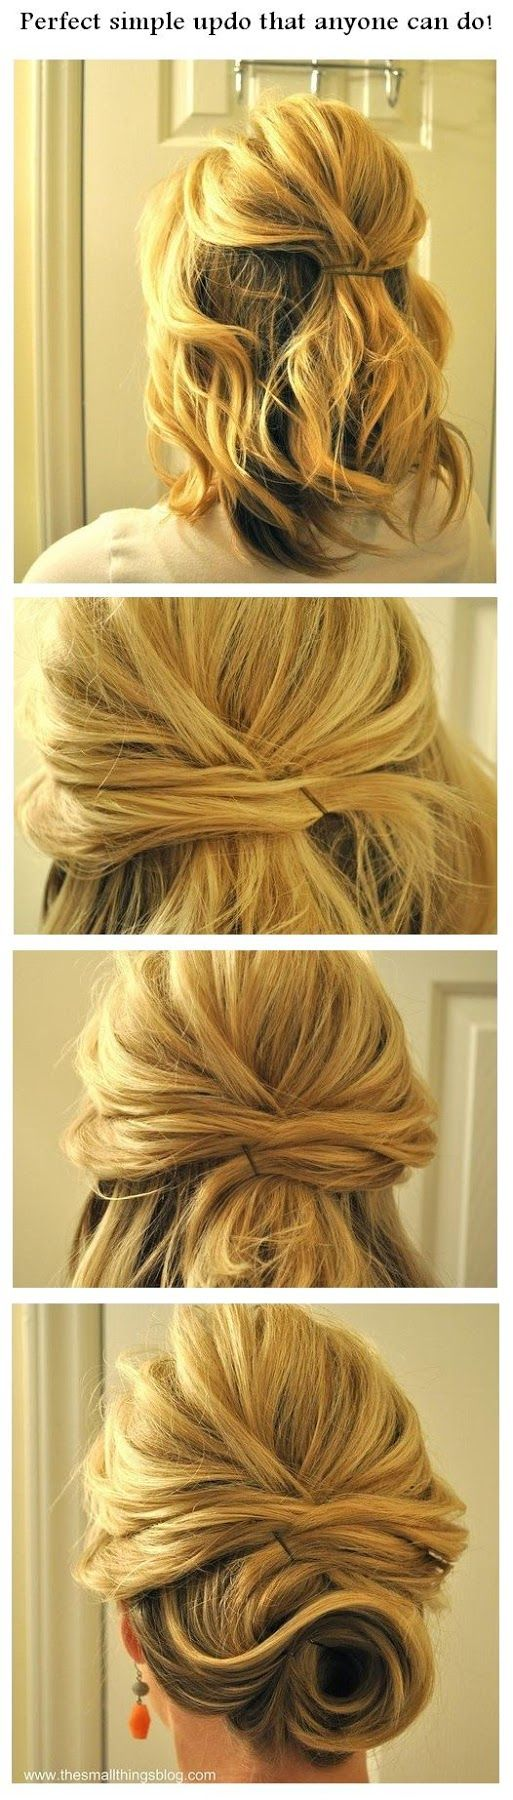 http://hairstyles-tutorial.blogspot.com/2012/12/perfect-simple-updo-that-anyone-can-do.html